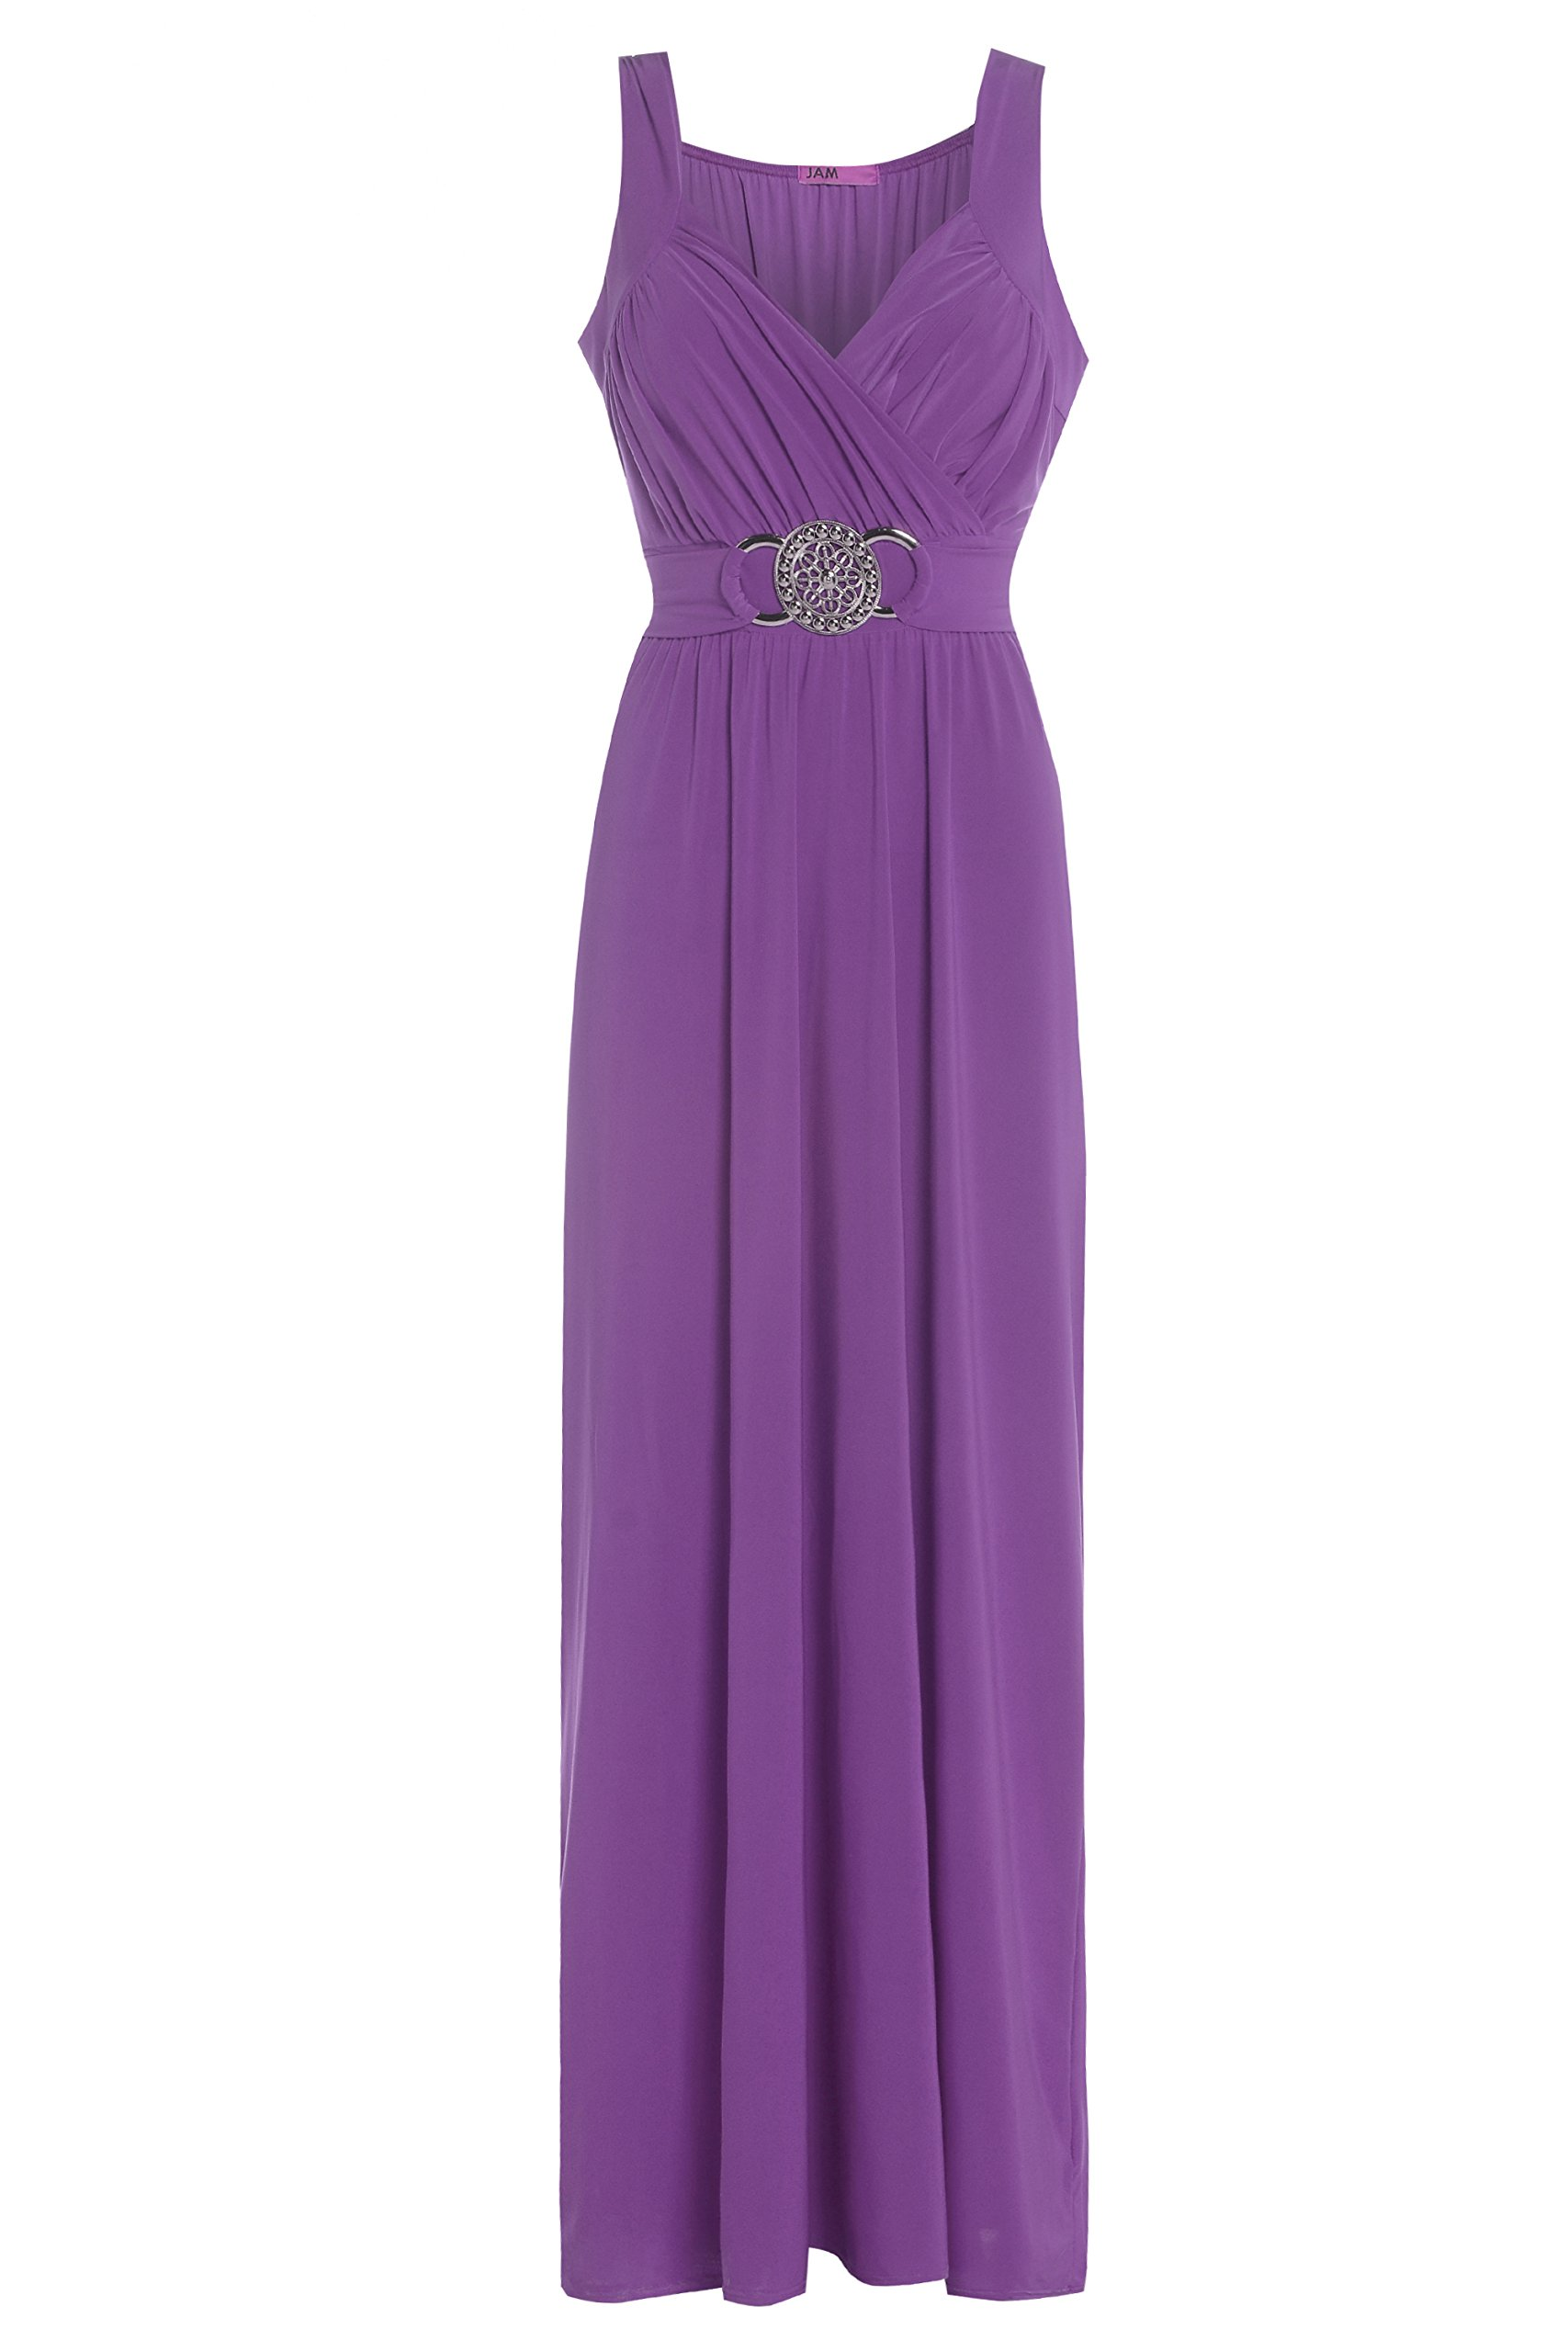 Plus Size Bridesmaid Dresses UK: Amazon.co.uk